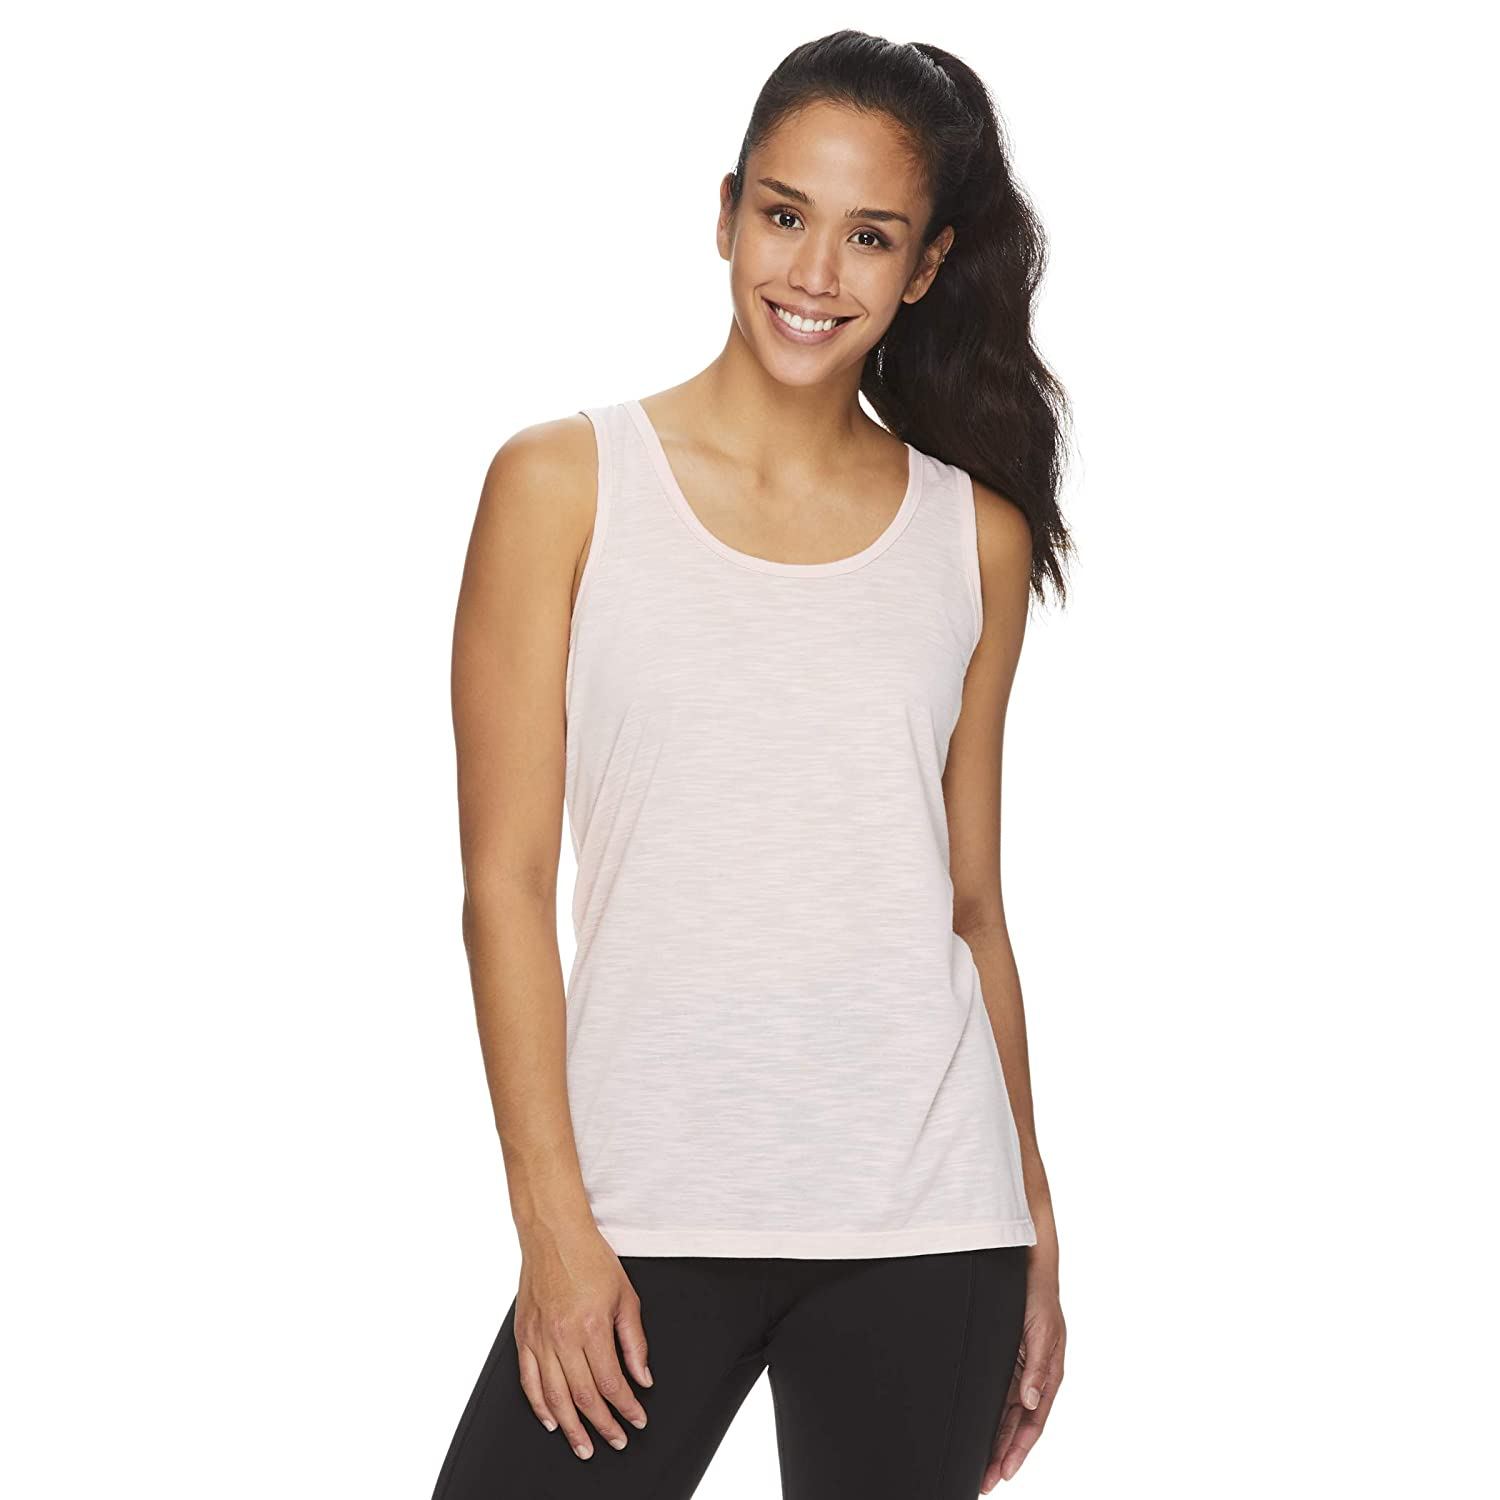 Gaiam Womens Open Back Yoga Tank Top Flowy Relaxed Fit Workout Shirt /& Gym Top